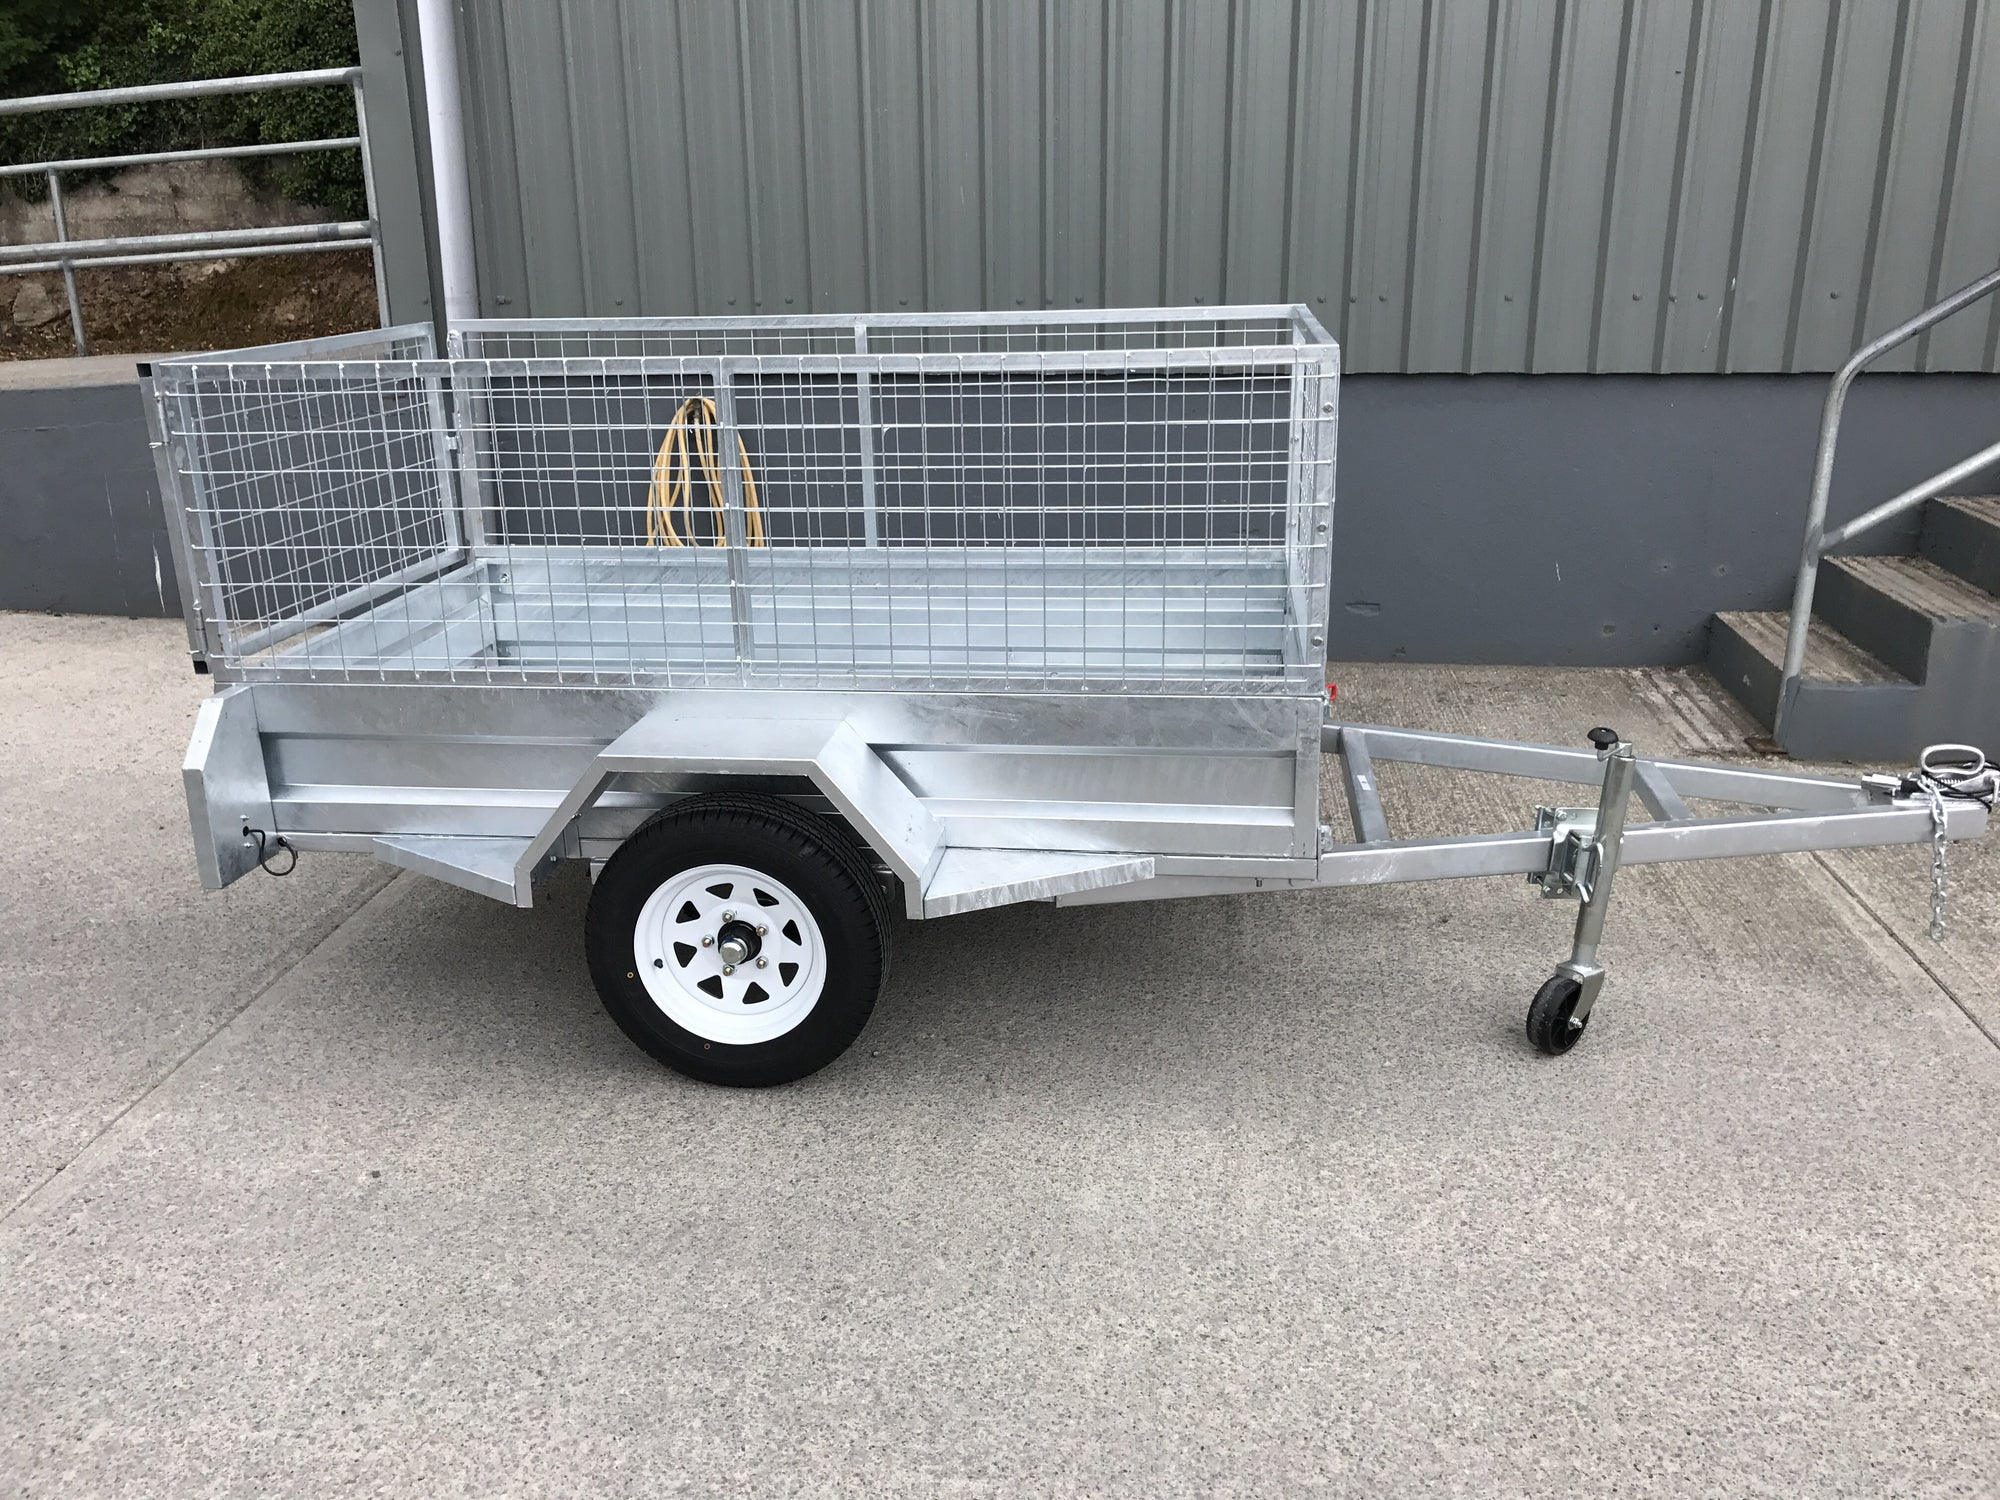 7 x 4 Galvanised Single Axle Trailer with Bradley Hitch